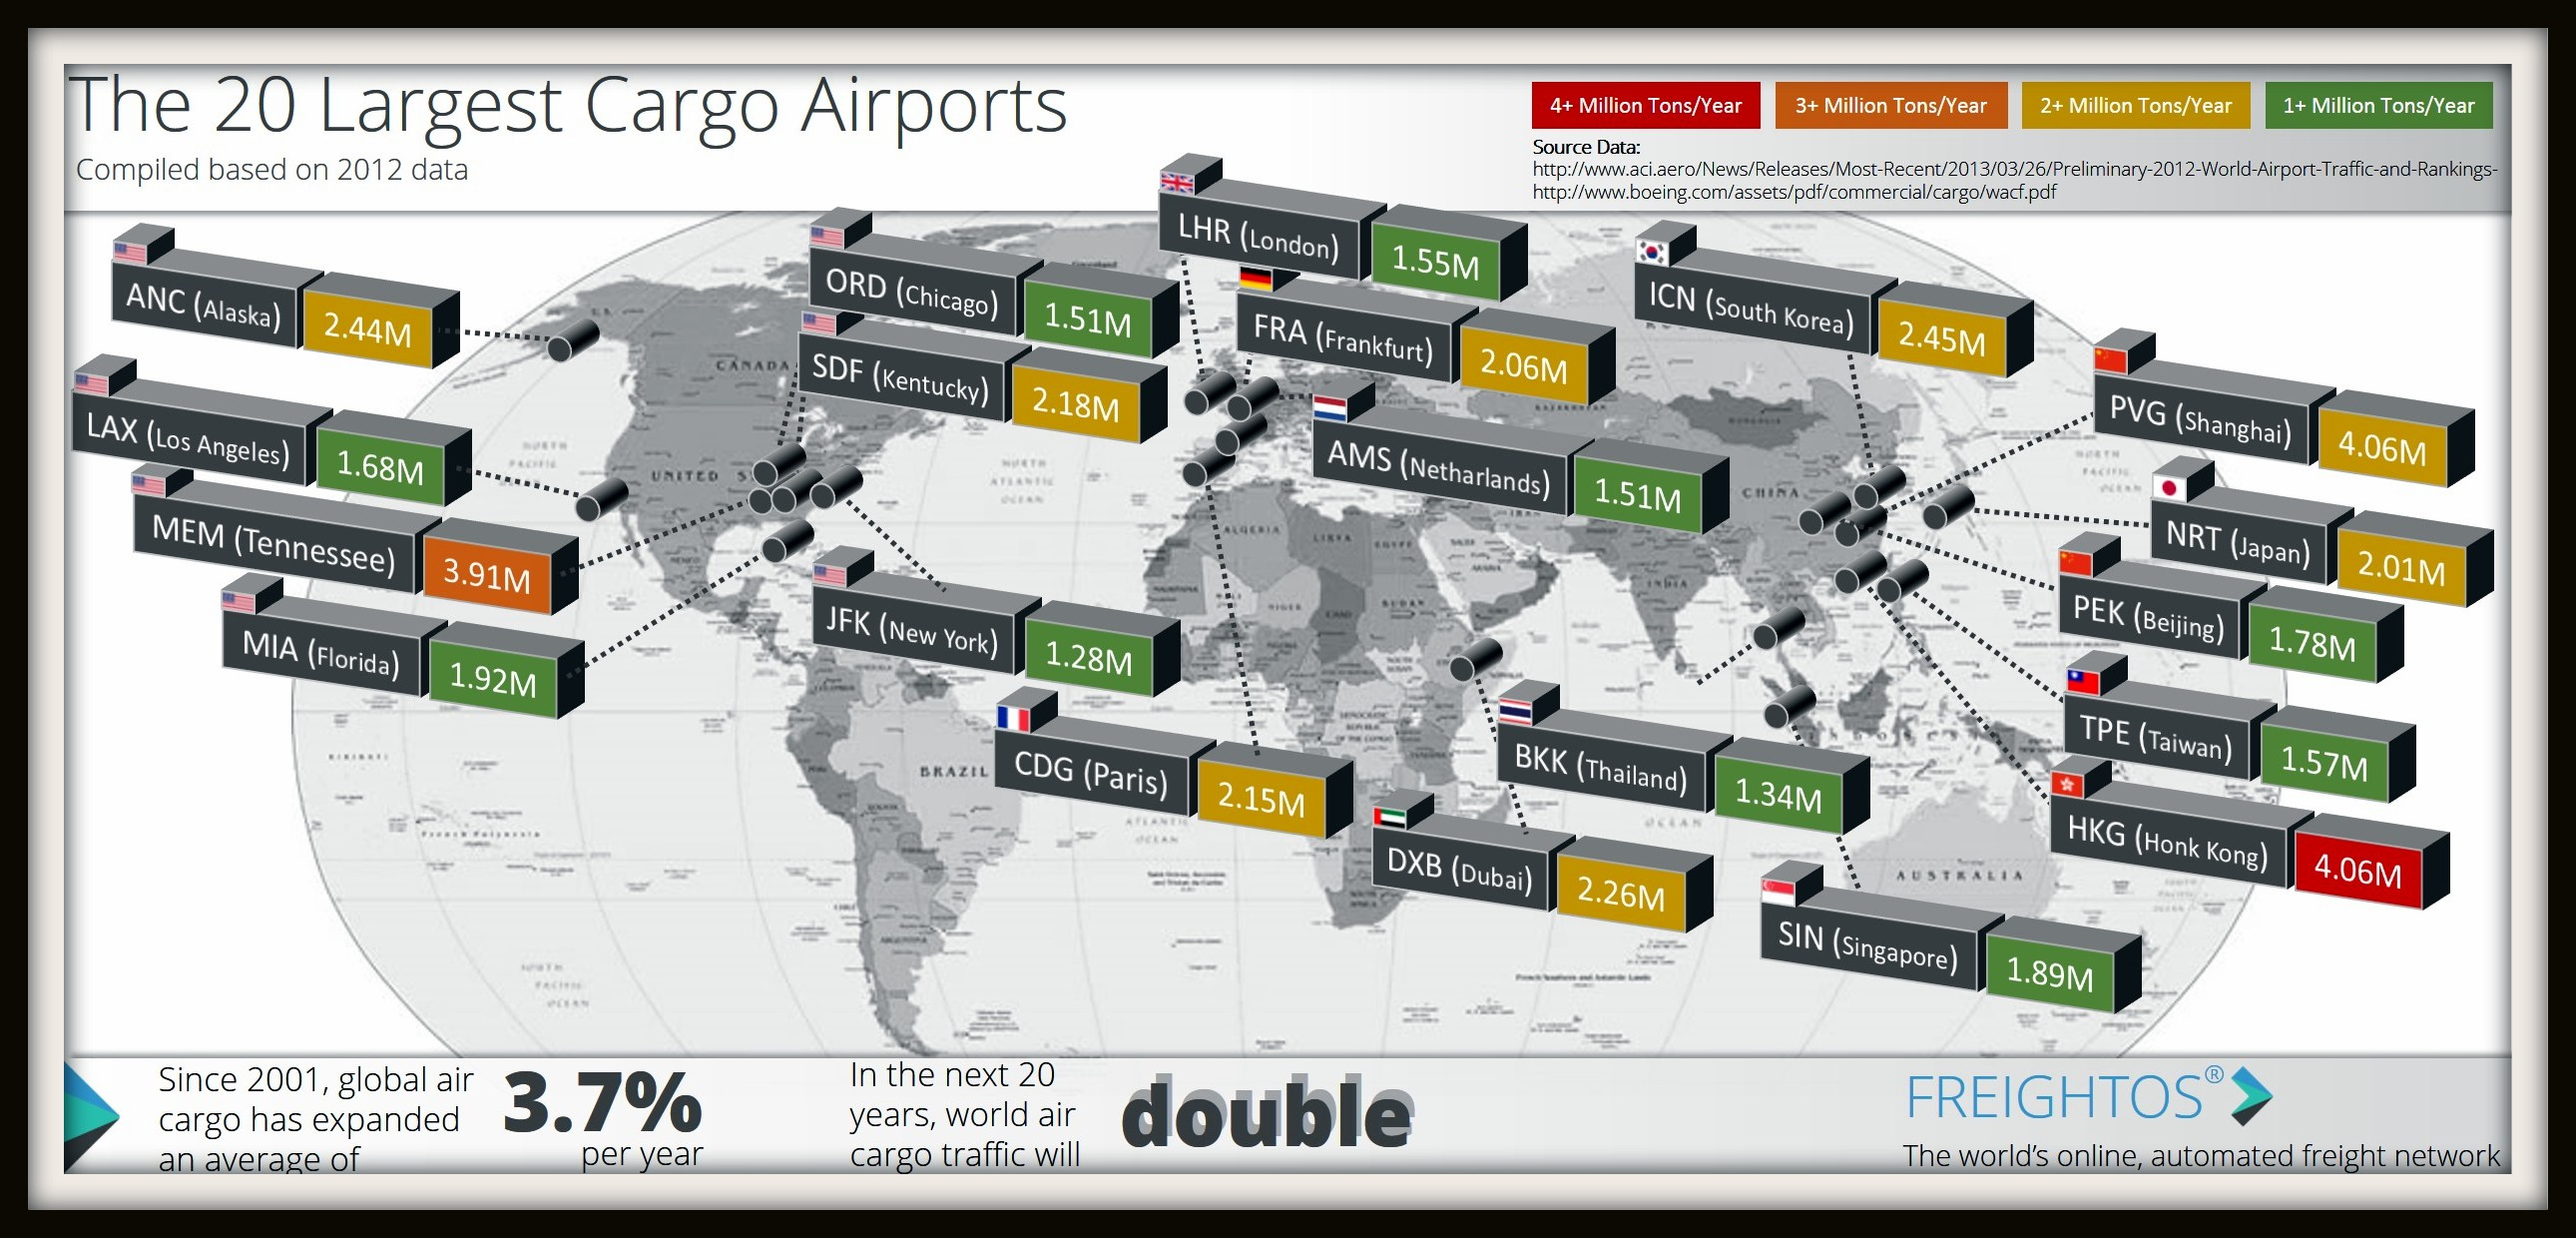 The World's Largest Cargo Airports